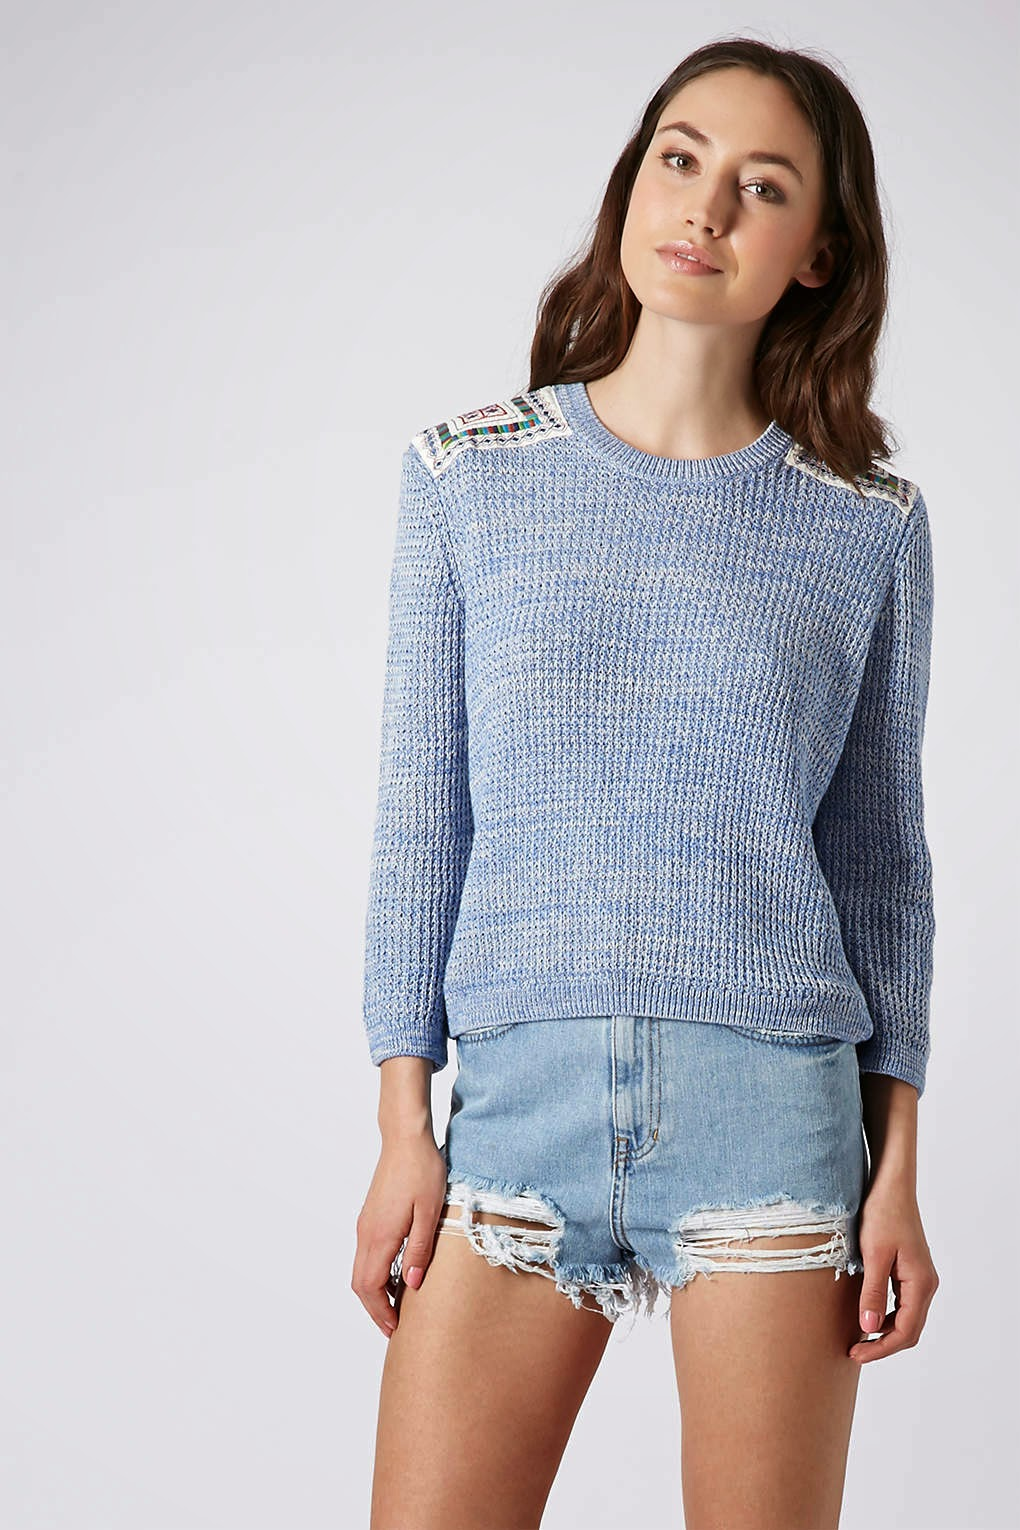 topshop blue jumper